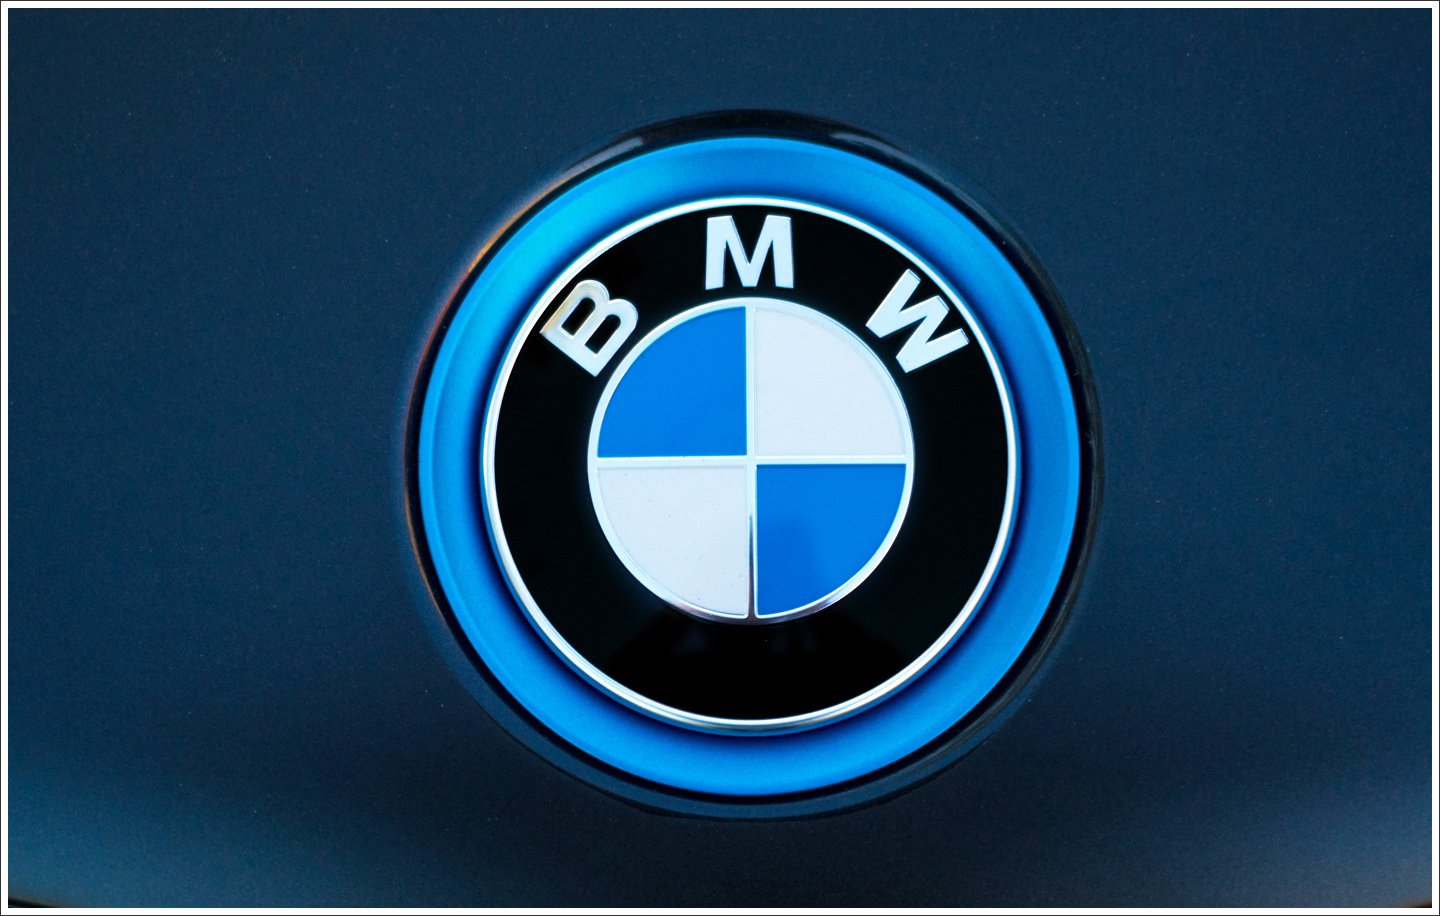 Bmw logo meaning and history symbol bmw world cars brands bmw logo biocorpaavc Choice Image